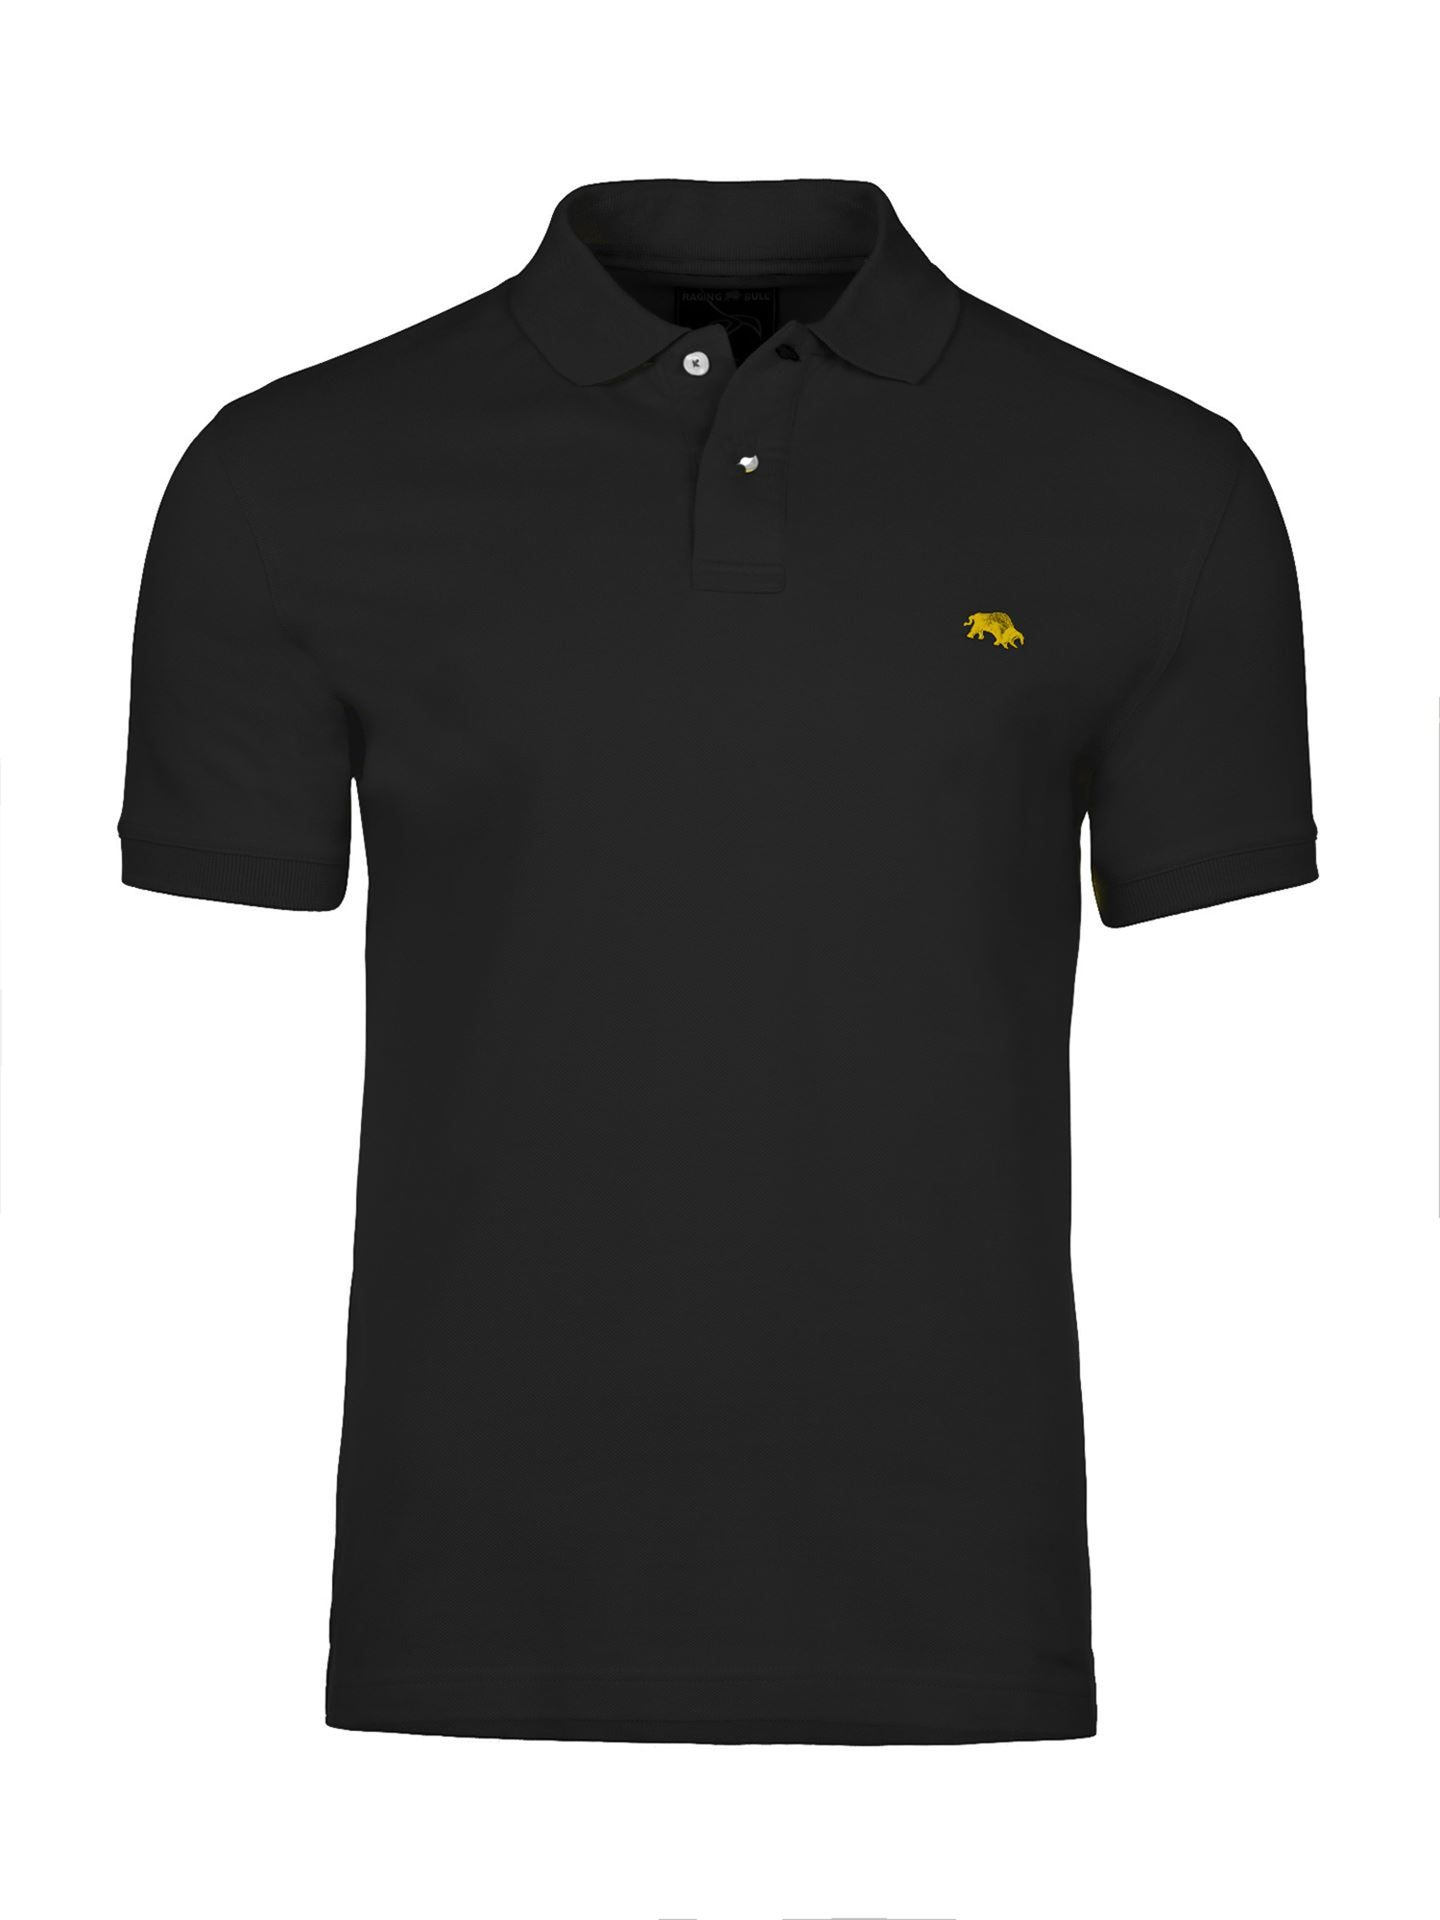 Men's Raging Bull Fly Fit Plain Polo, Black